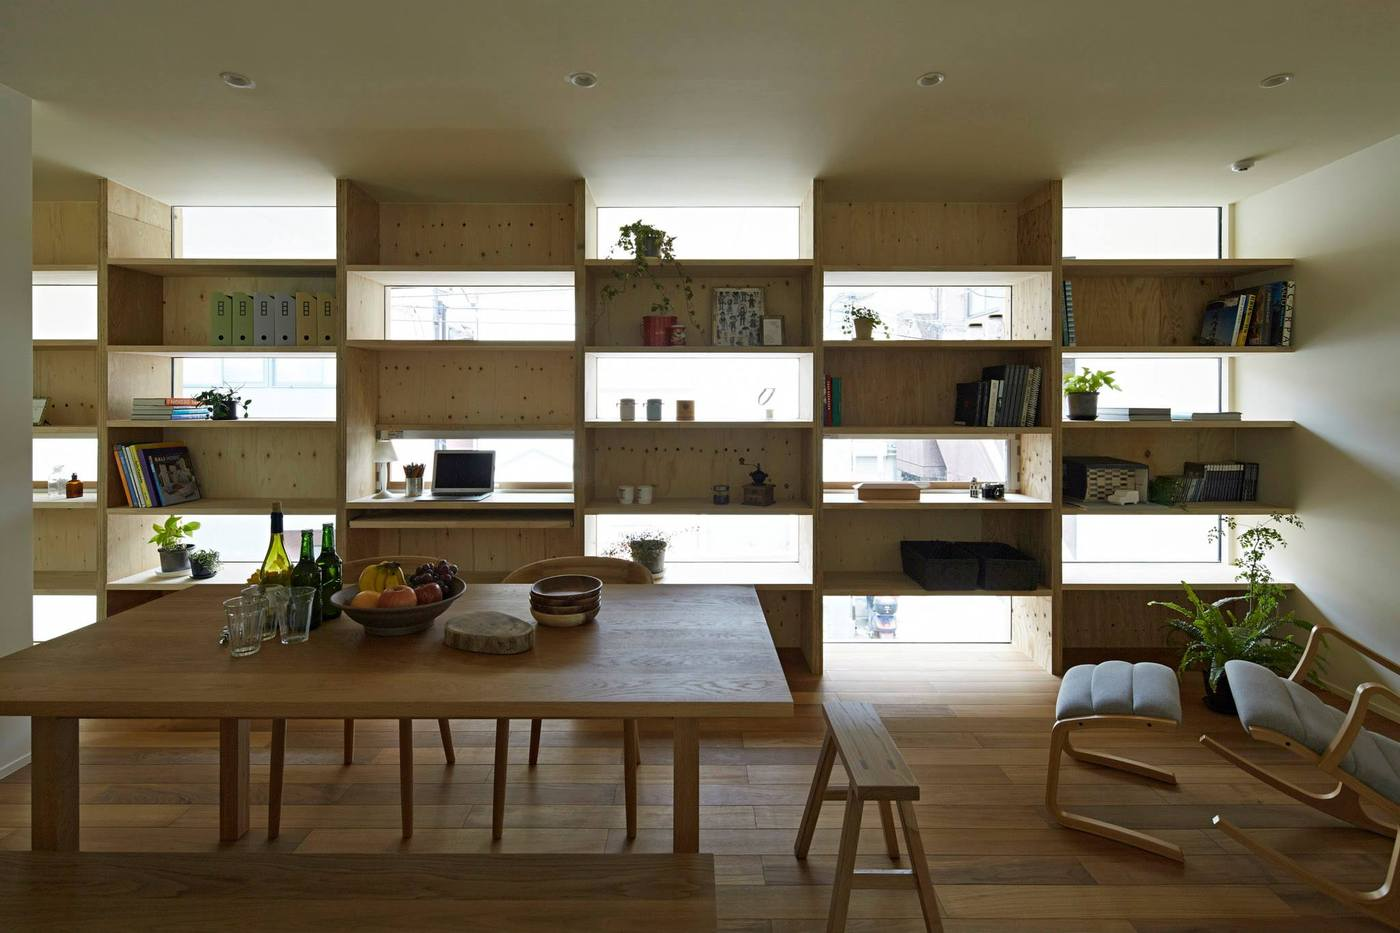 window-shelving-idea-save-space-and-get-privacy-1-thumb-1400xauto-53680